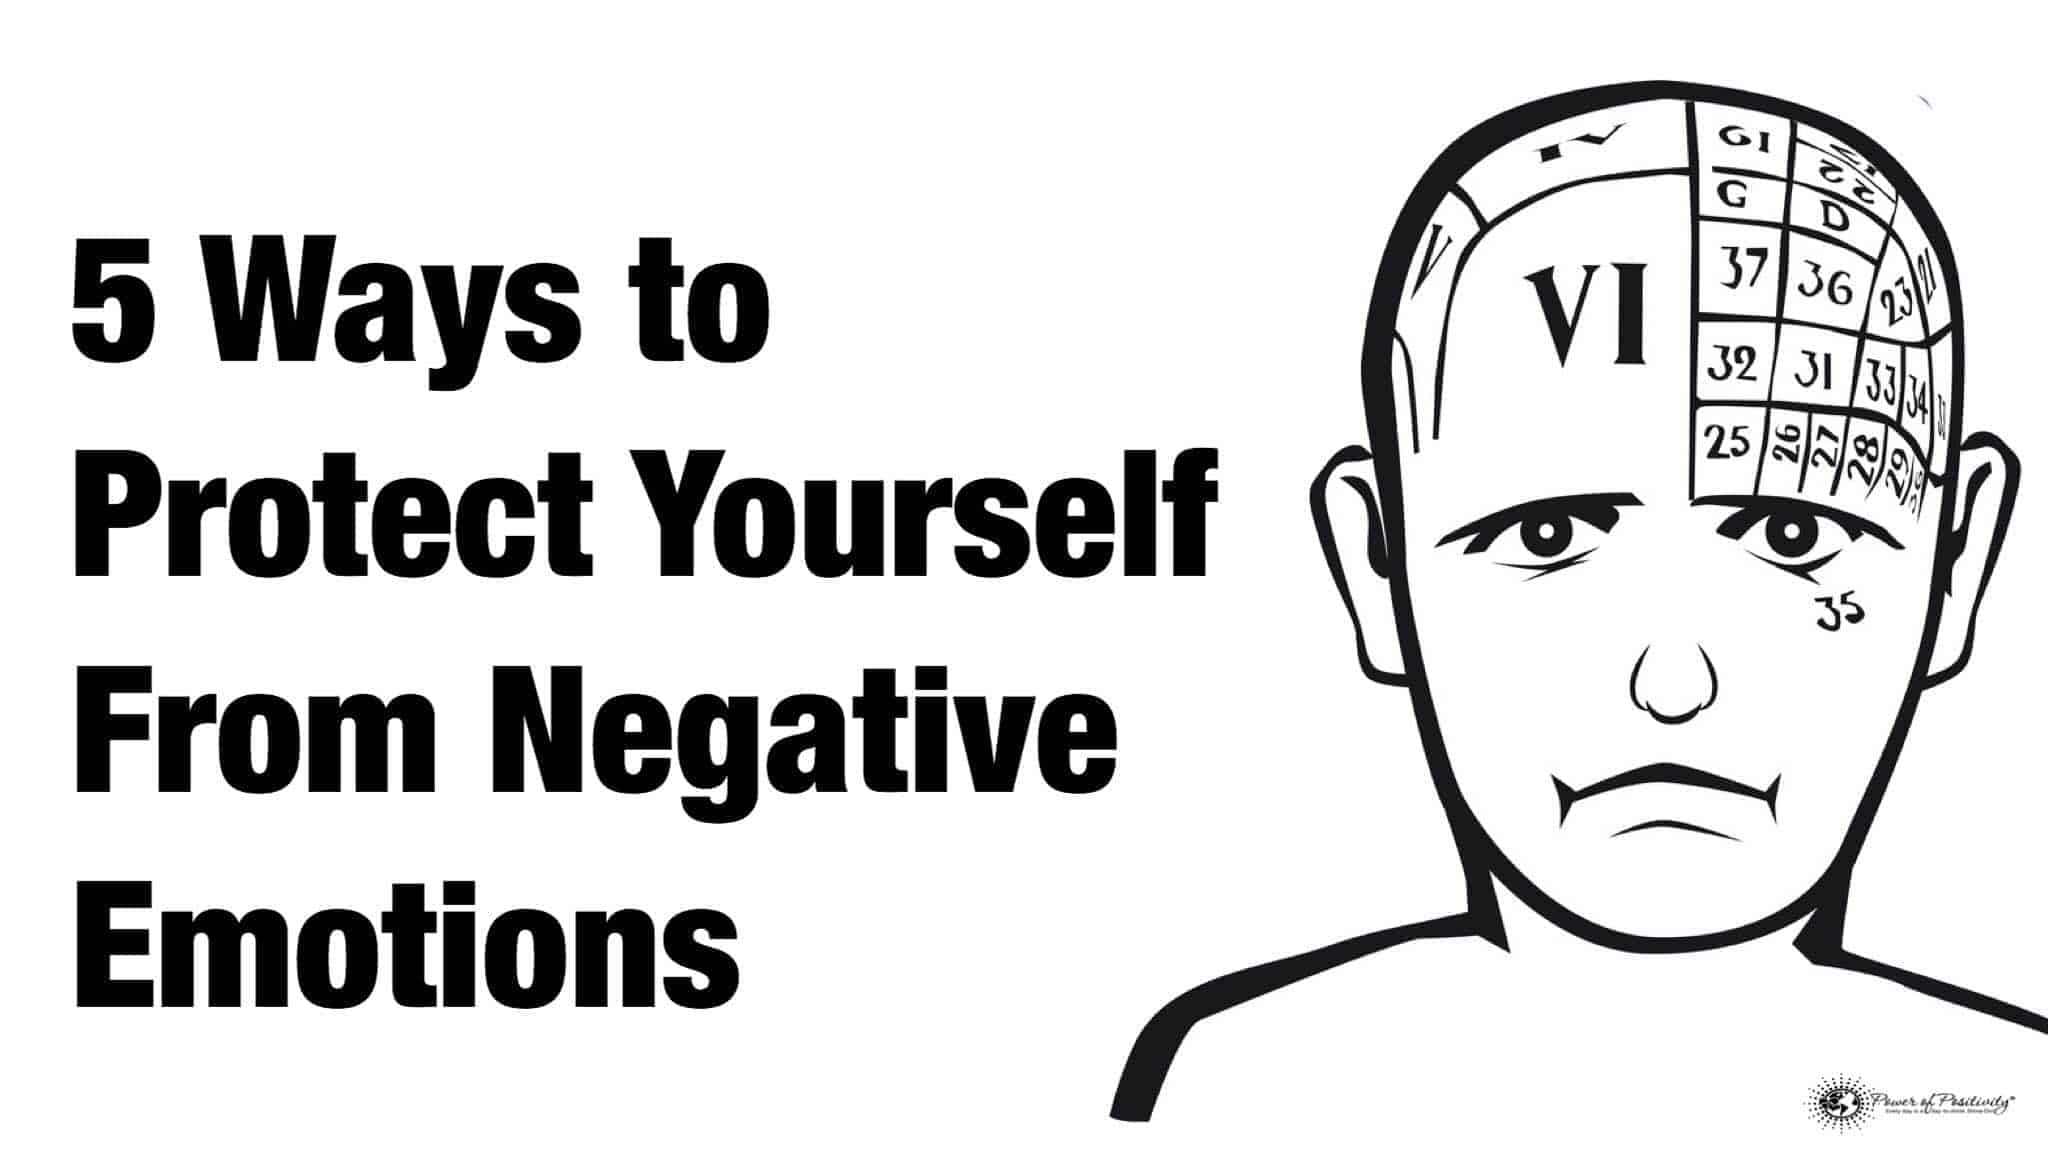 5 Ways To Protect Yourself From Negative Emotions